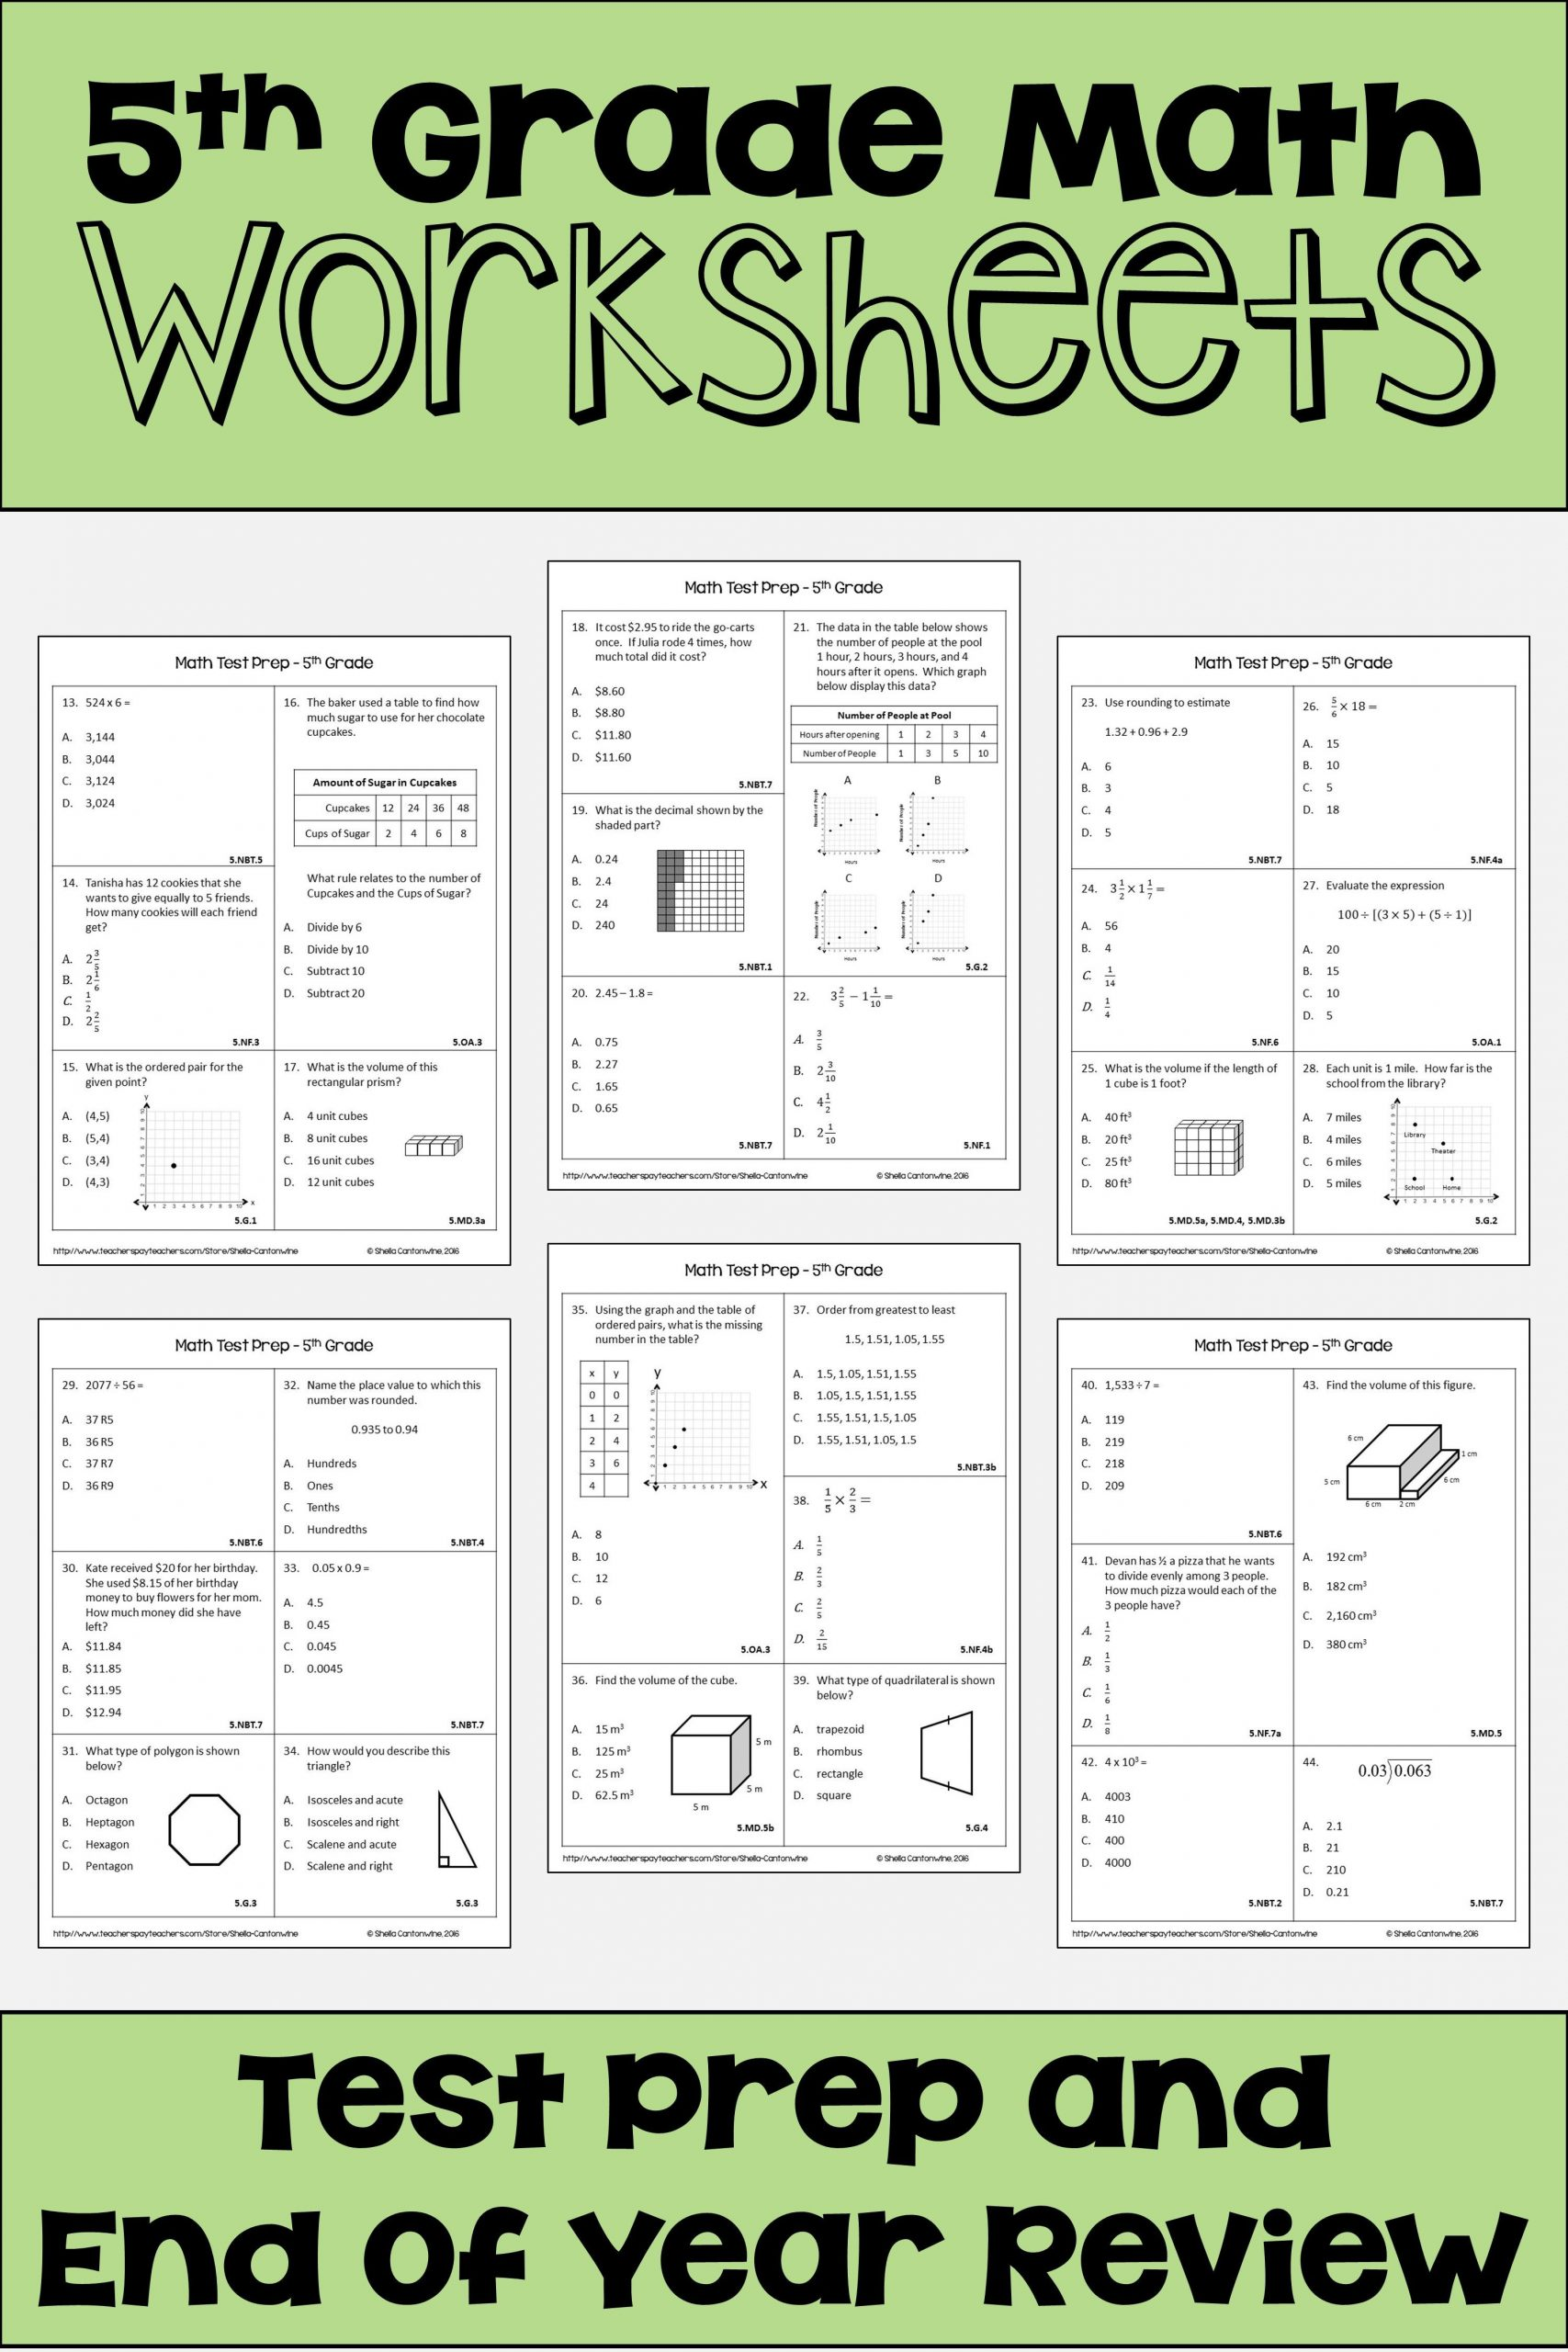 March Madness Math Worksheets these 5th Grade Math Worksheets are Fun for Students and